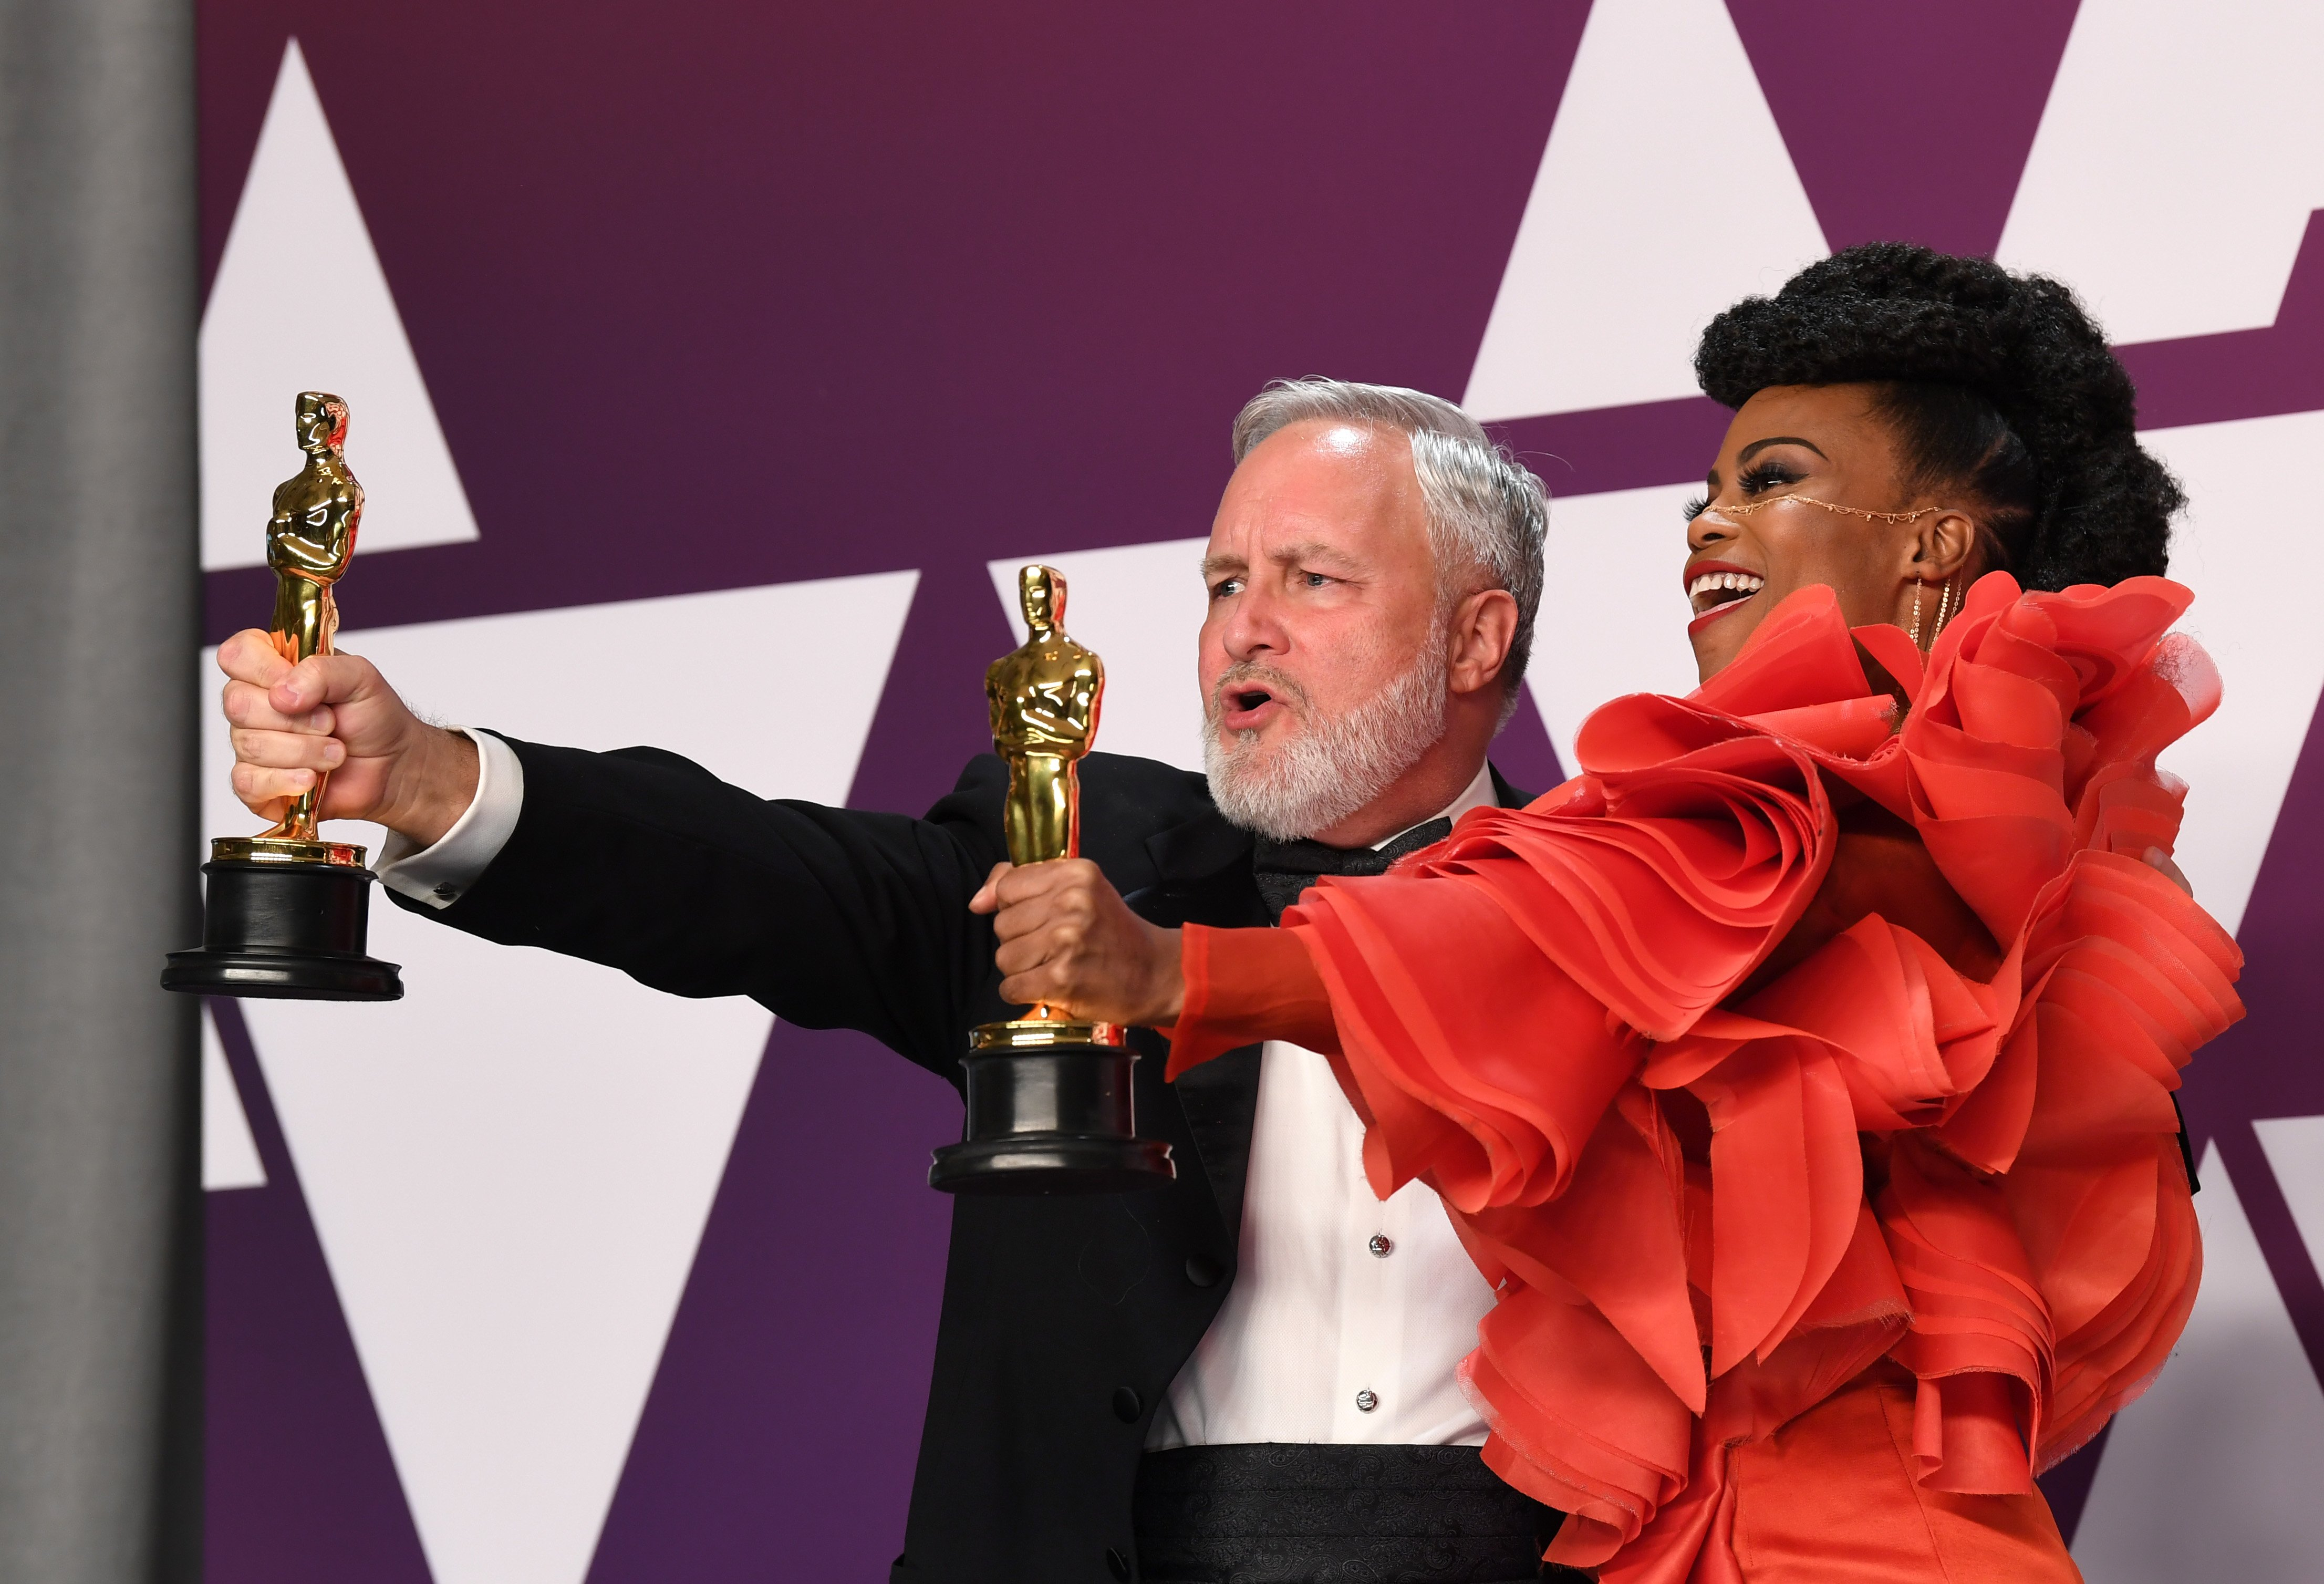 Backstage at the Oscars, Winners Respond to History-Making Wins in a Changing Hollywood